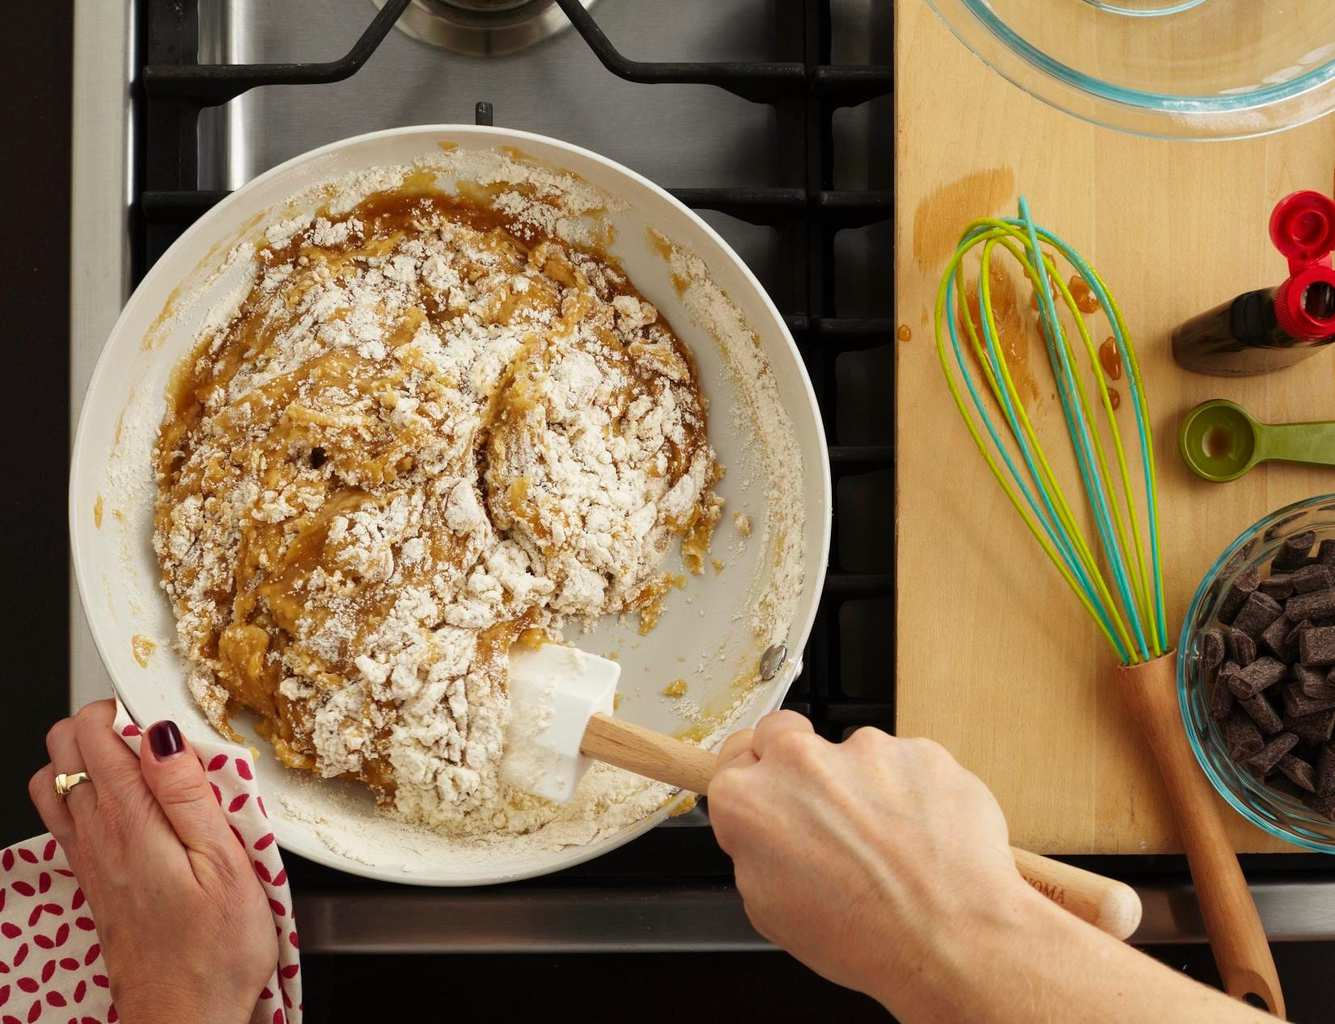 An overhead view of chocolate chip cookie dough being stirred together in a skillet.